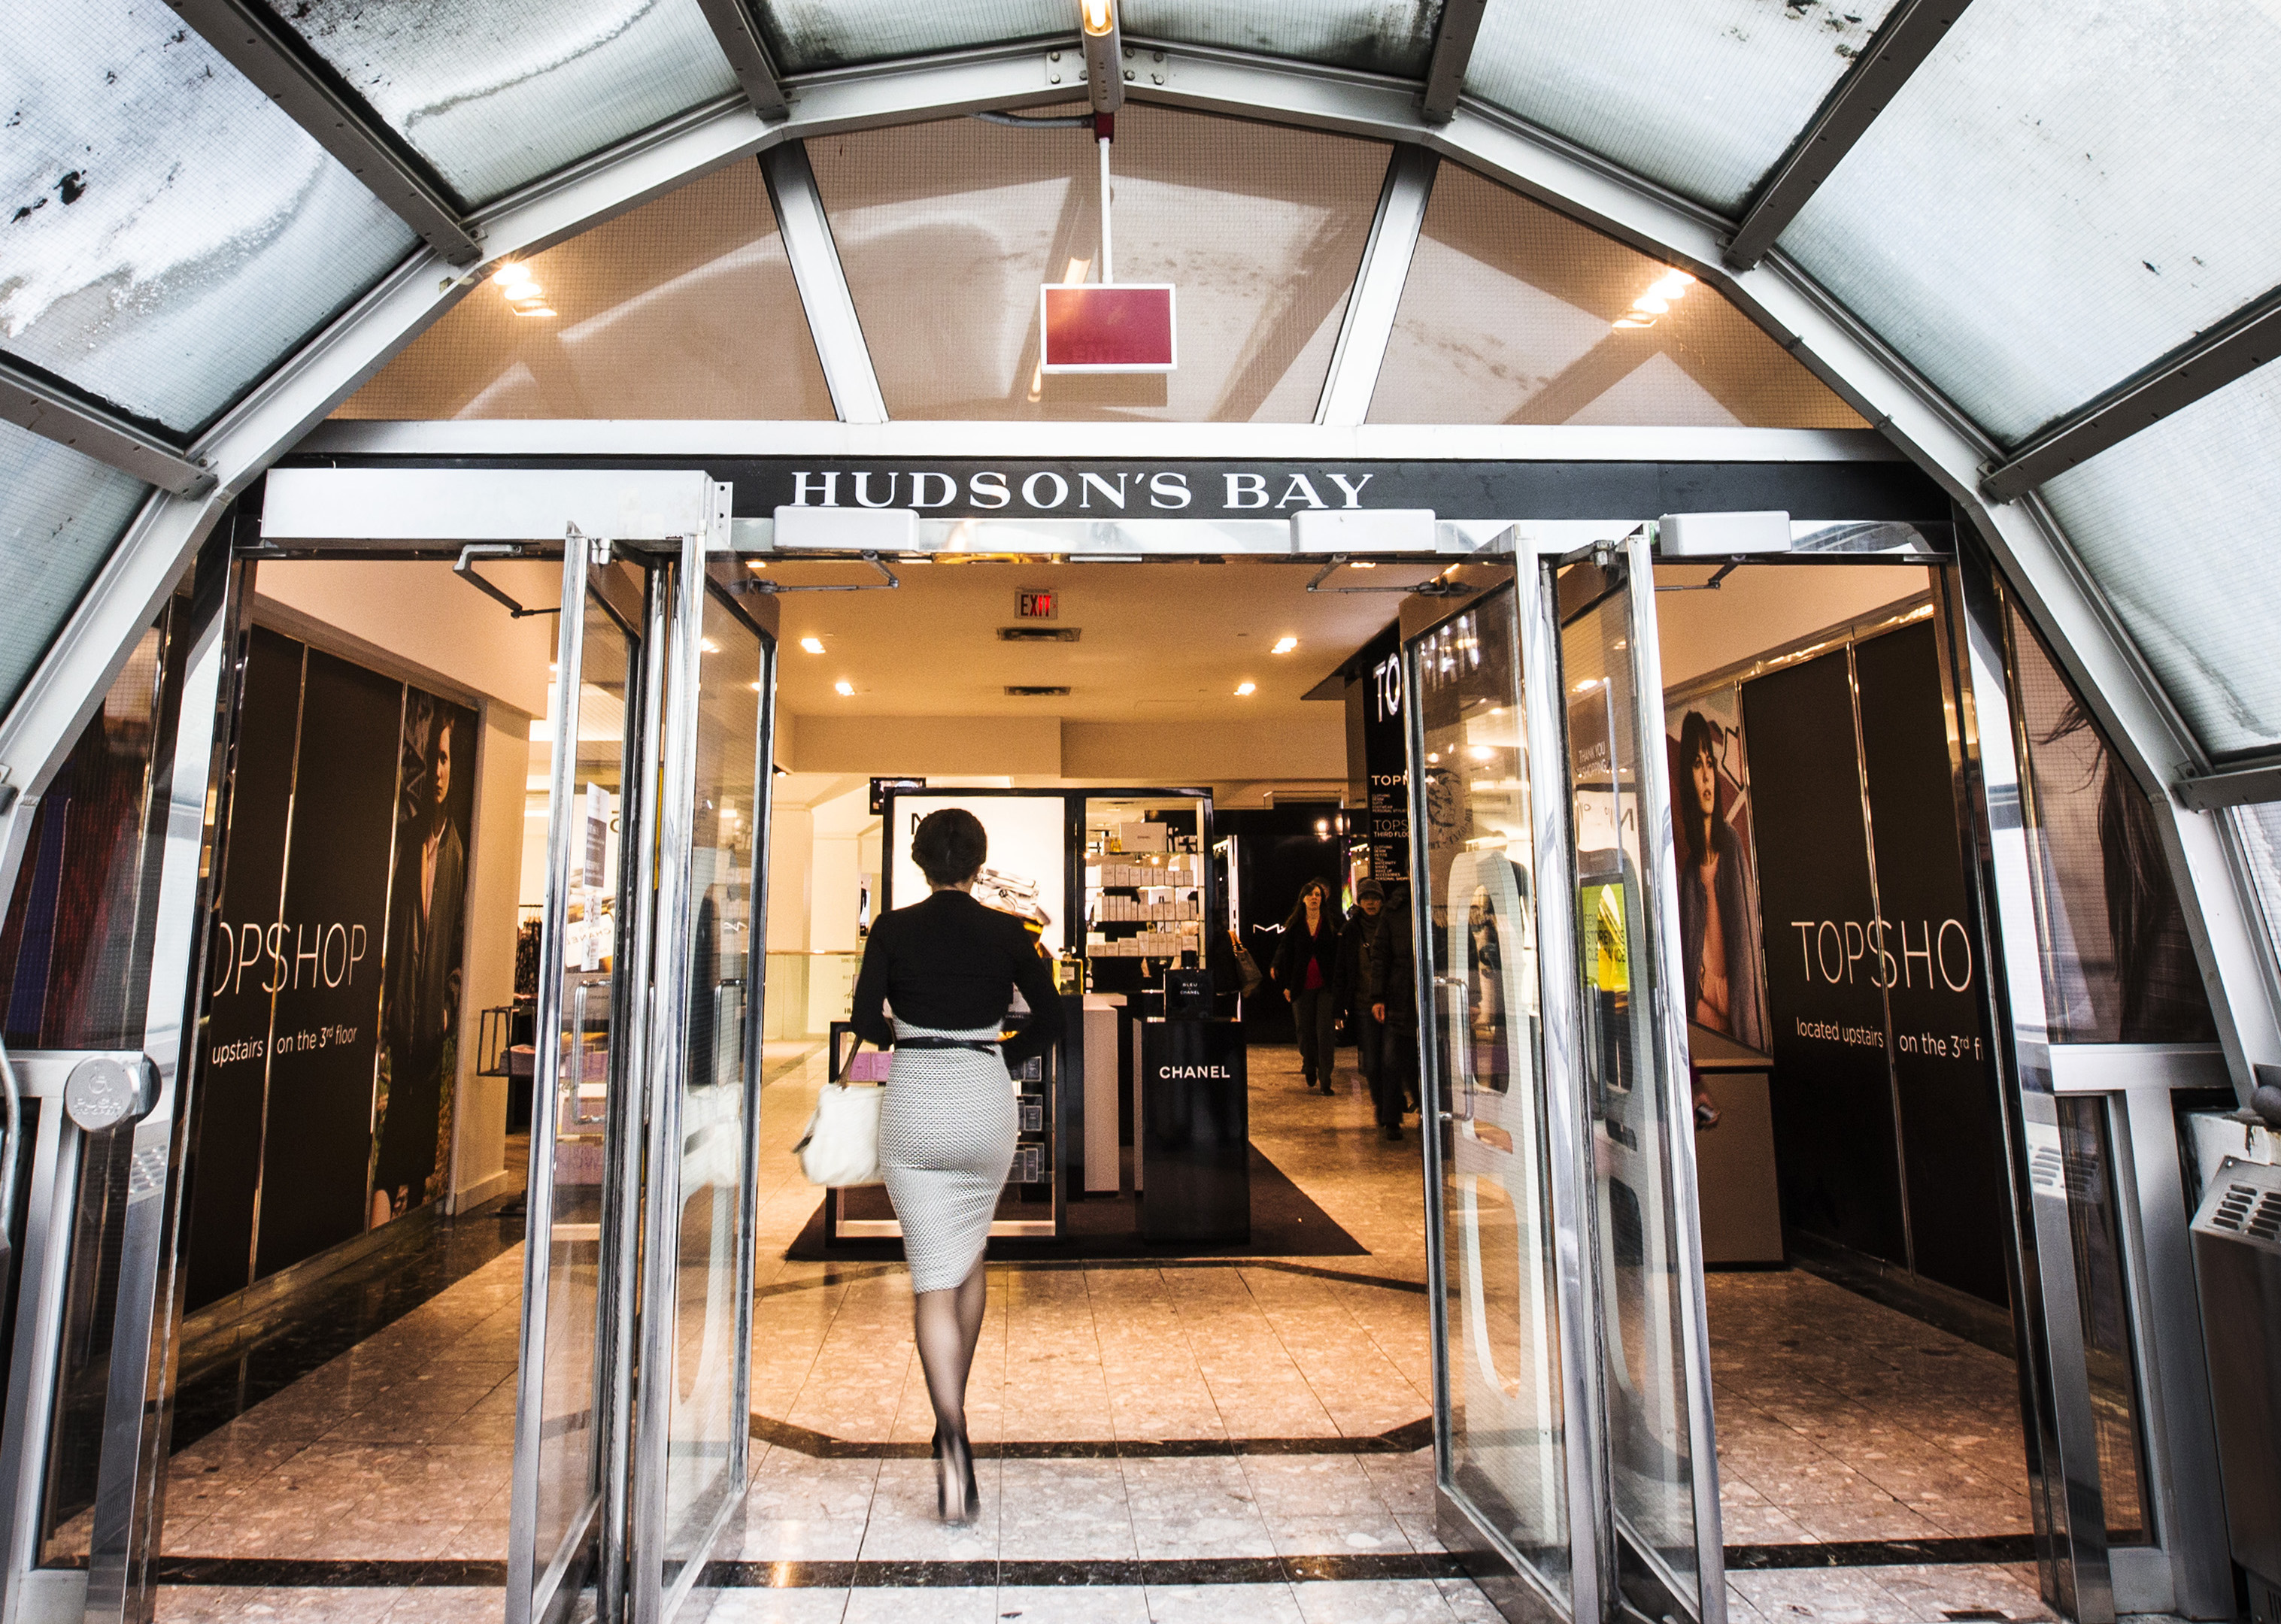 A man walks through the doors at the Hudson's Bay Company (HBC) flagship department store in Toronto